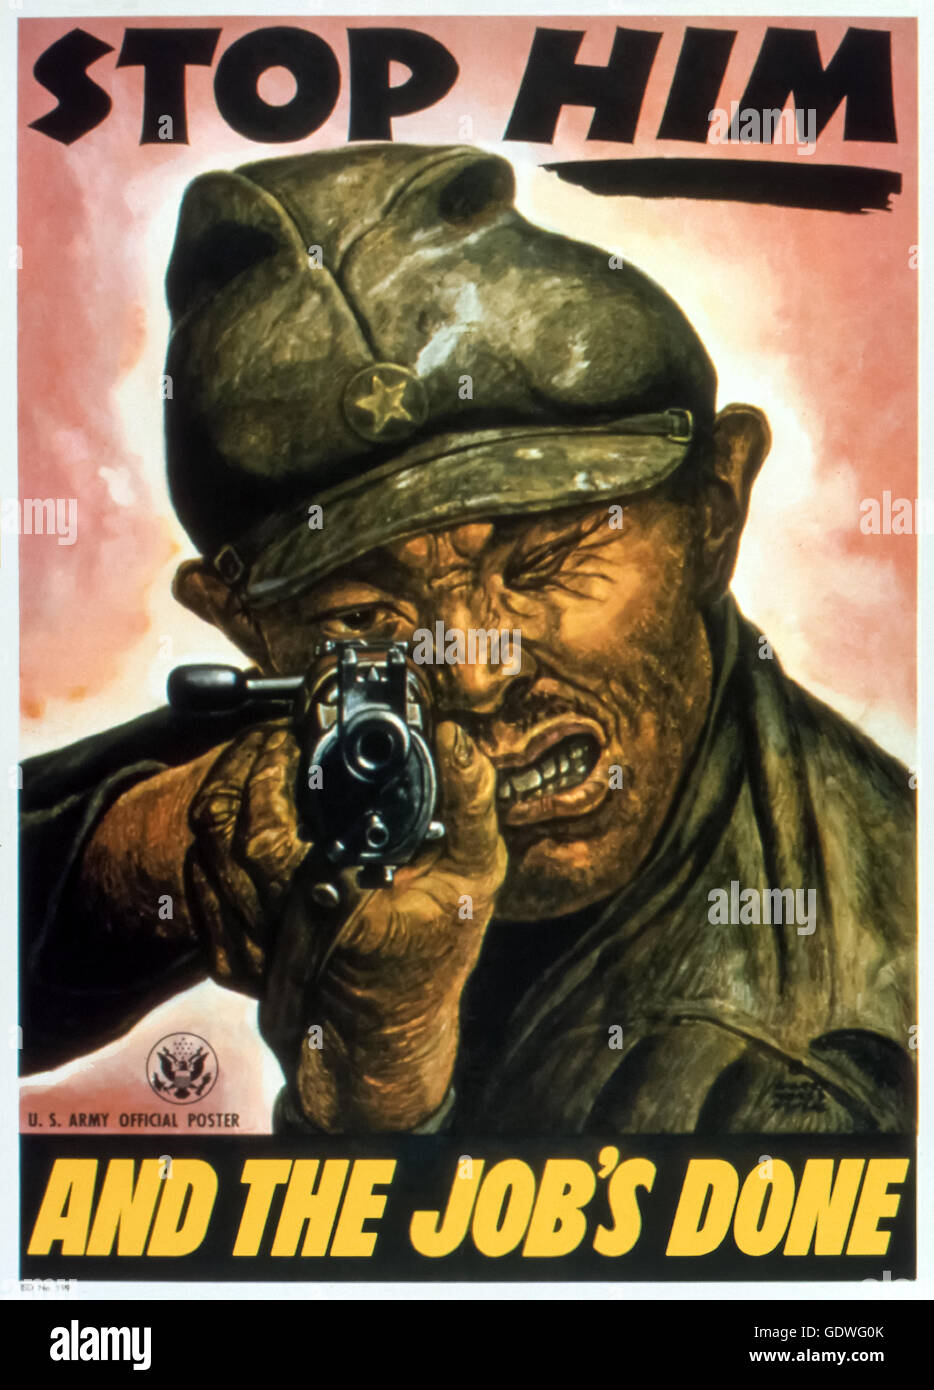 """STOP HIM AND THE JOB'S DONE"" US Government World War 2 anti-Japanese propaganda poster published in 1945 depicts - Stock Image"